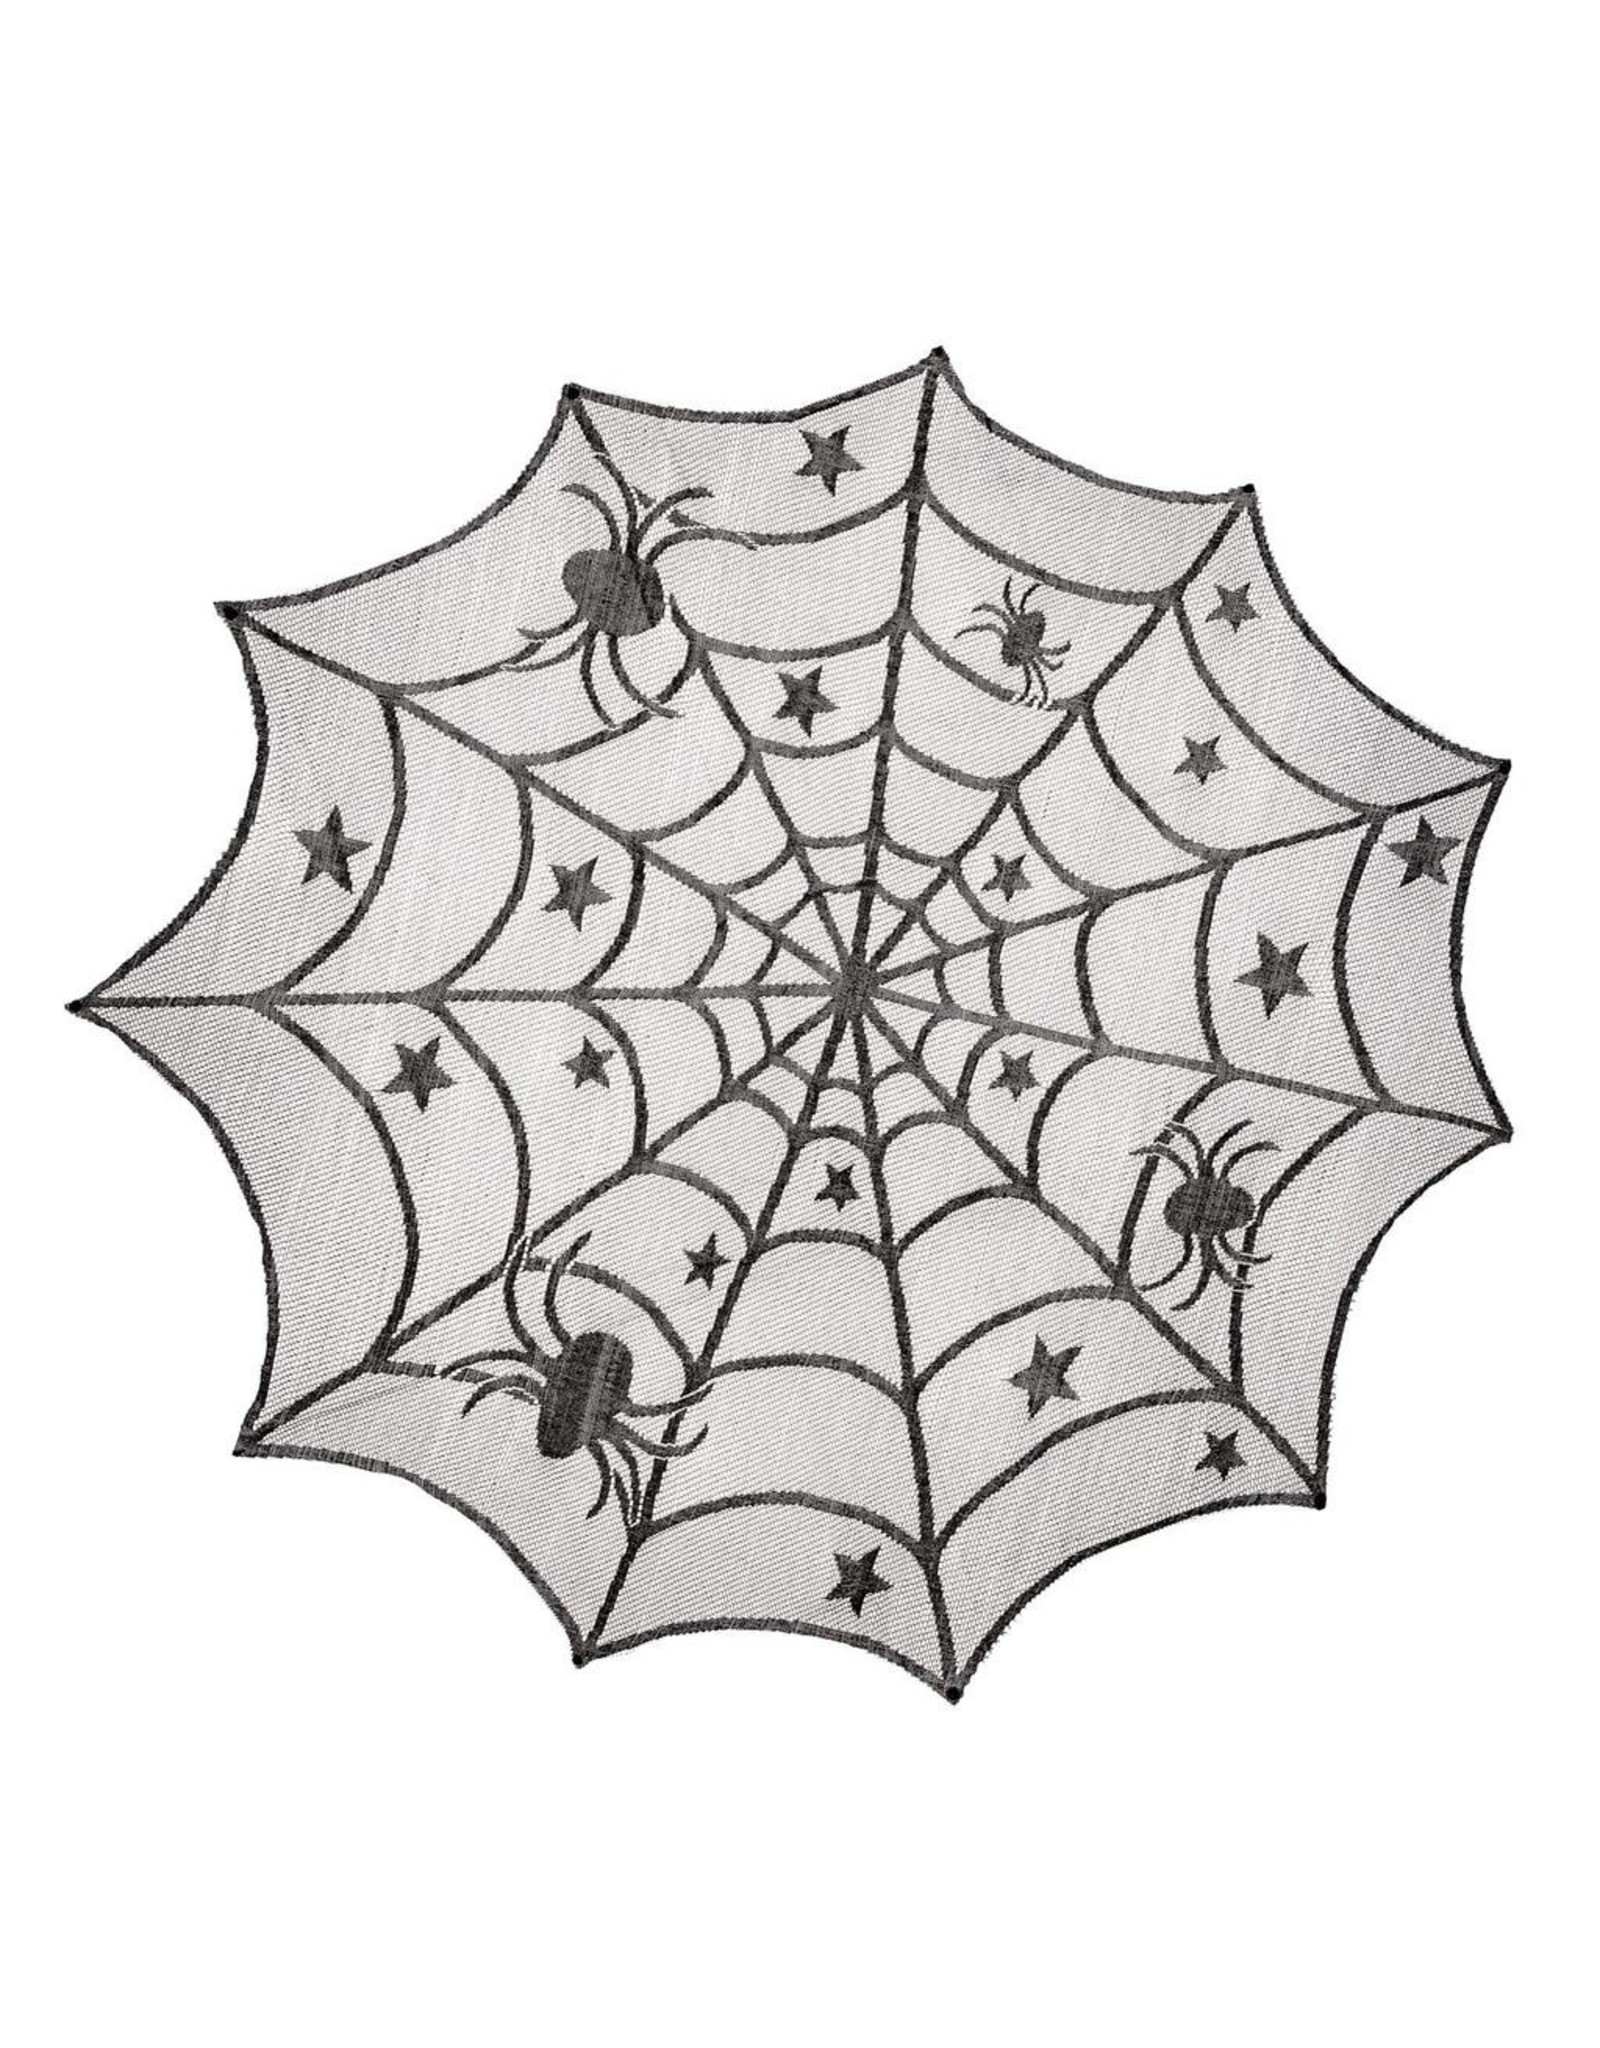 Darice Halloween Spider Web Lace Tablecloth 40 Inch Diameter